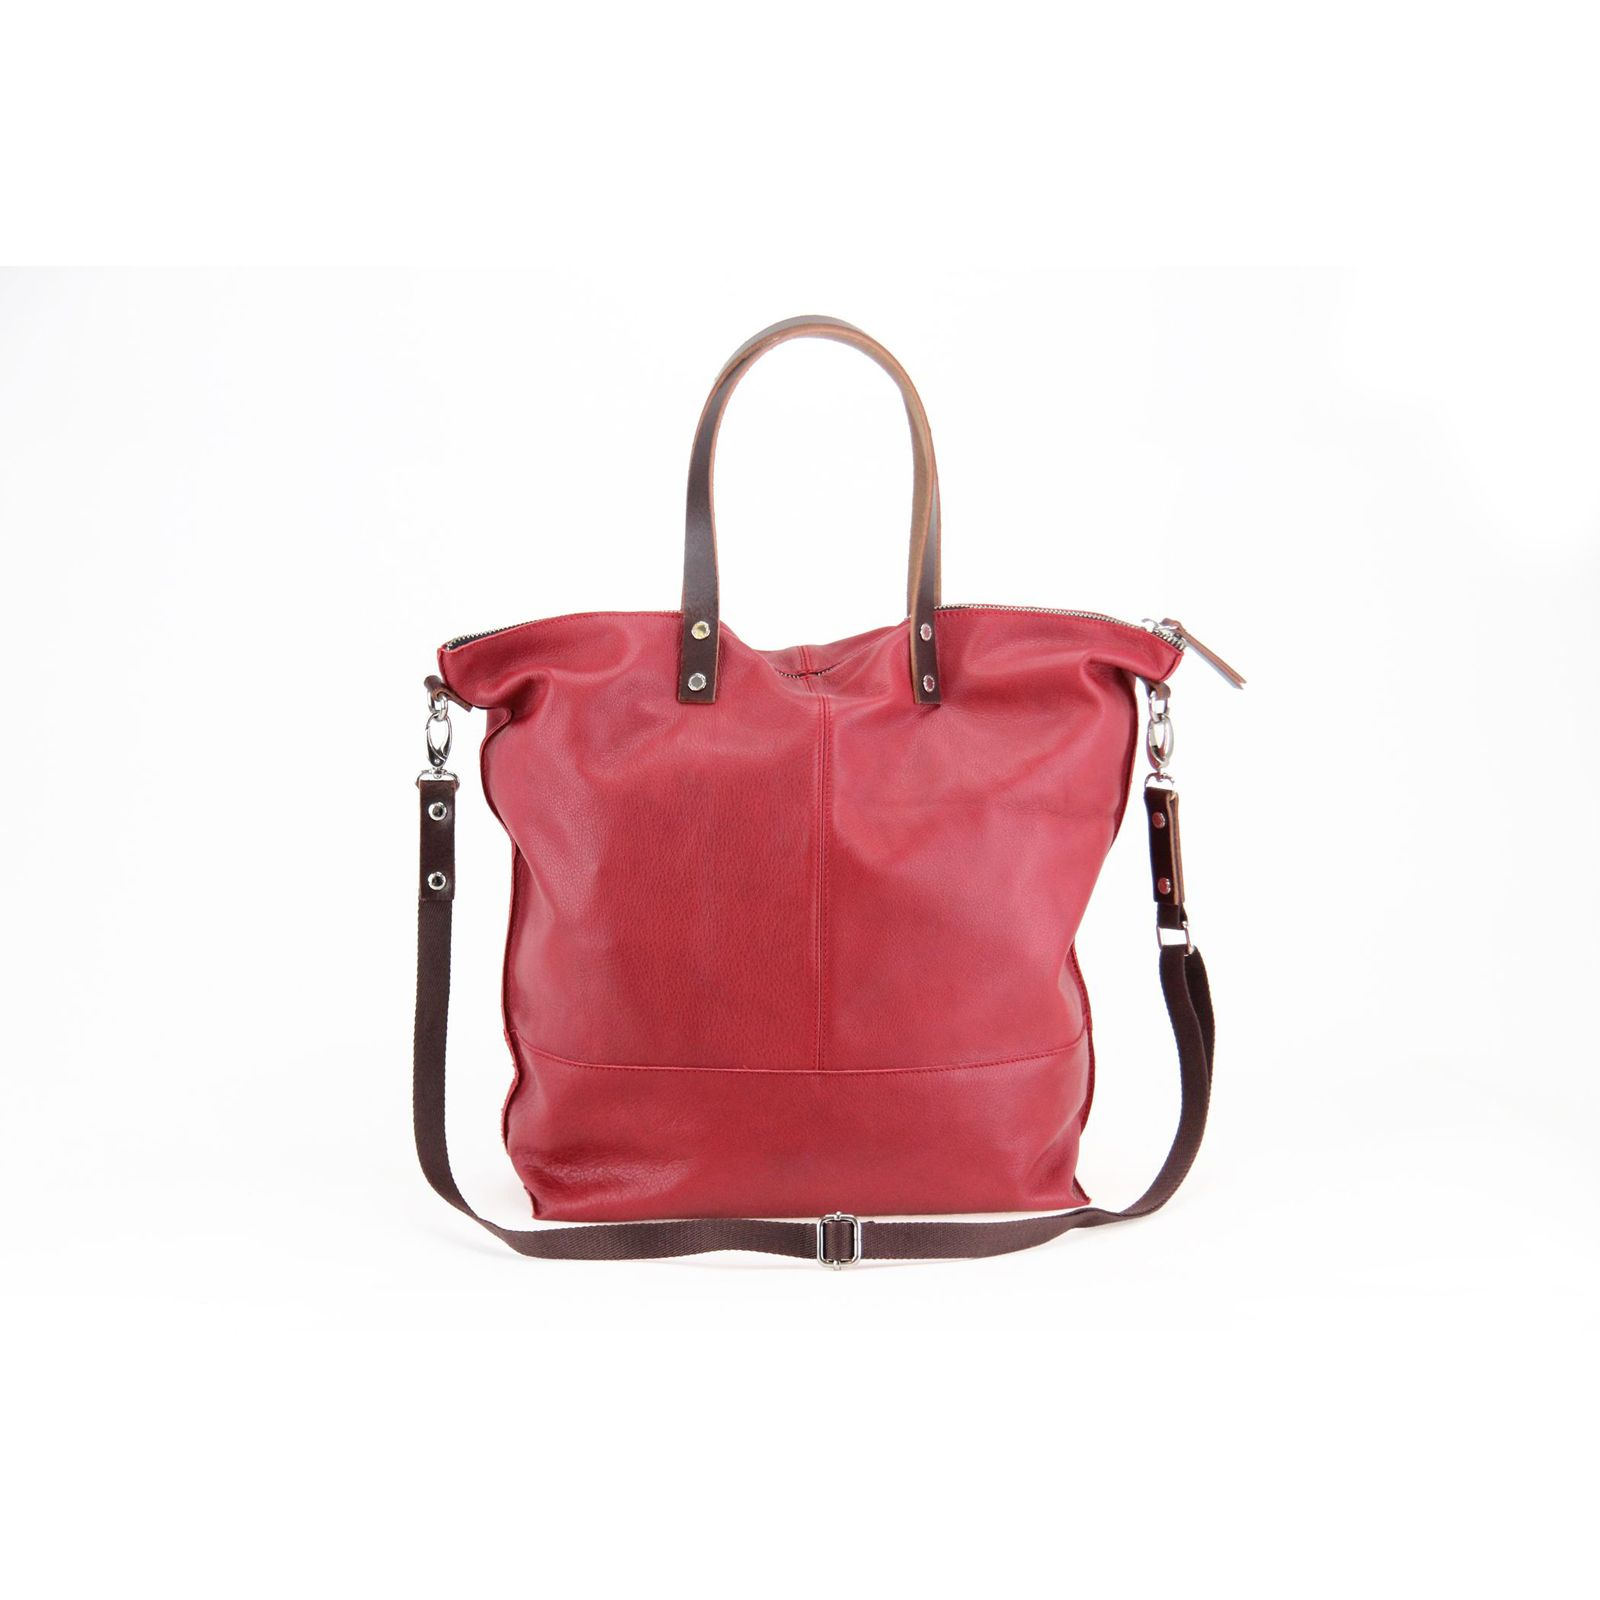 Sac Paquetage Rouge Cuir Aromatic En Cabas PPw75rq